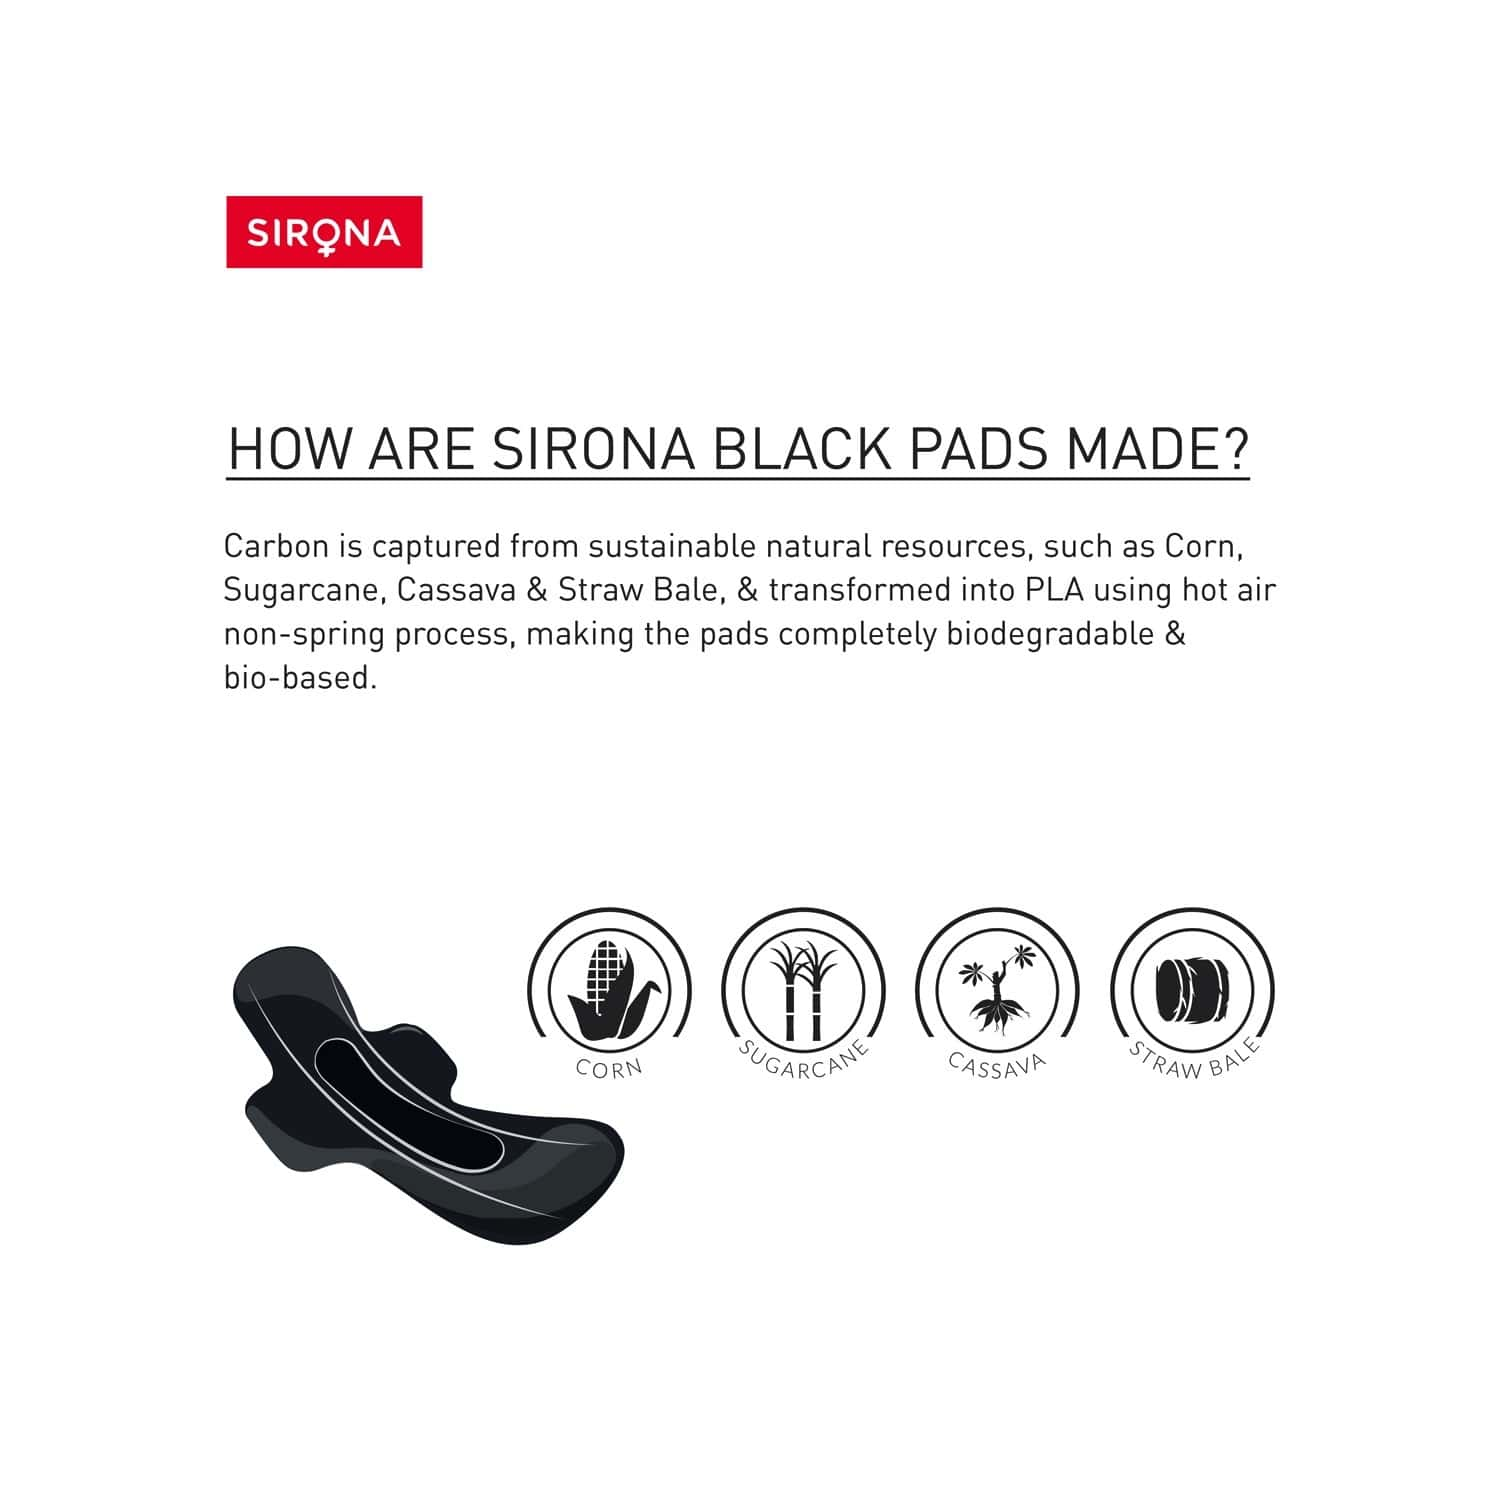 Sirona Biodegradable Super Soft Black Sanitary Pads/napkins, Antibacterial, Ultra Thin And Rash Free Protection - Large (l) Night Pads (pack Of 10)